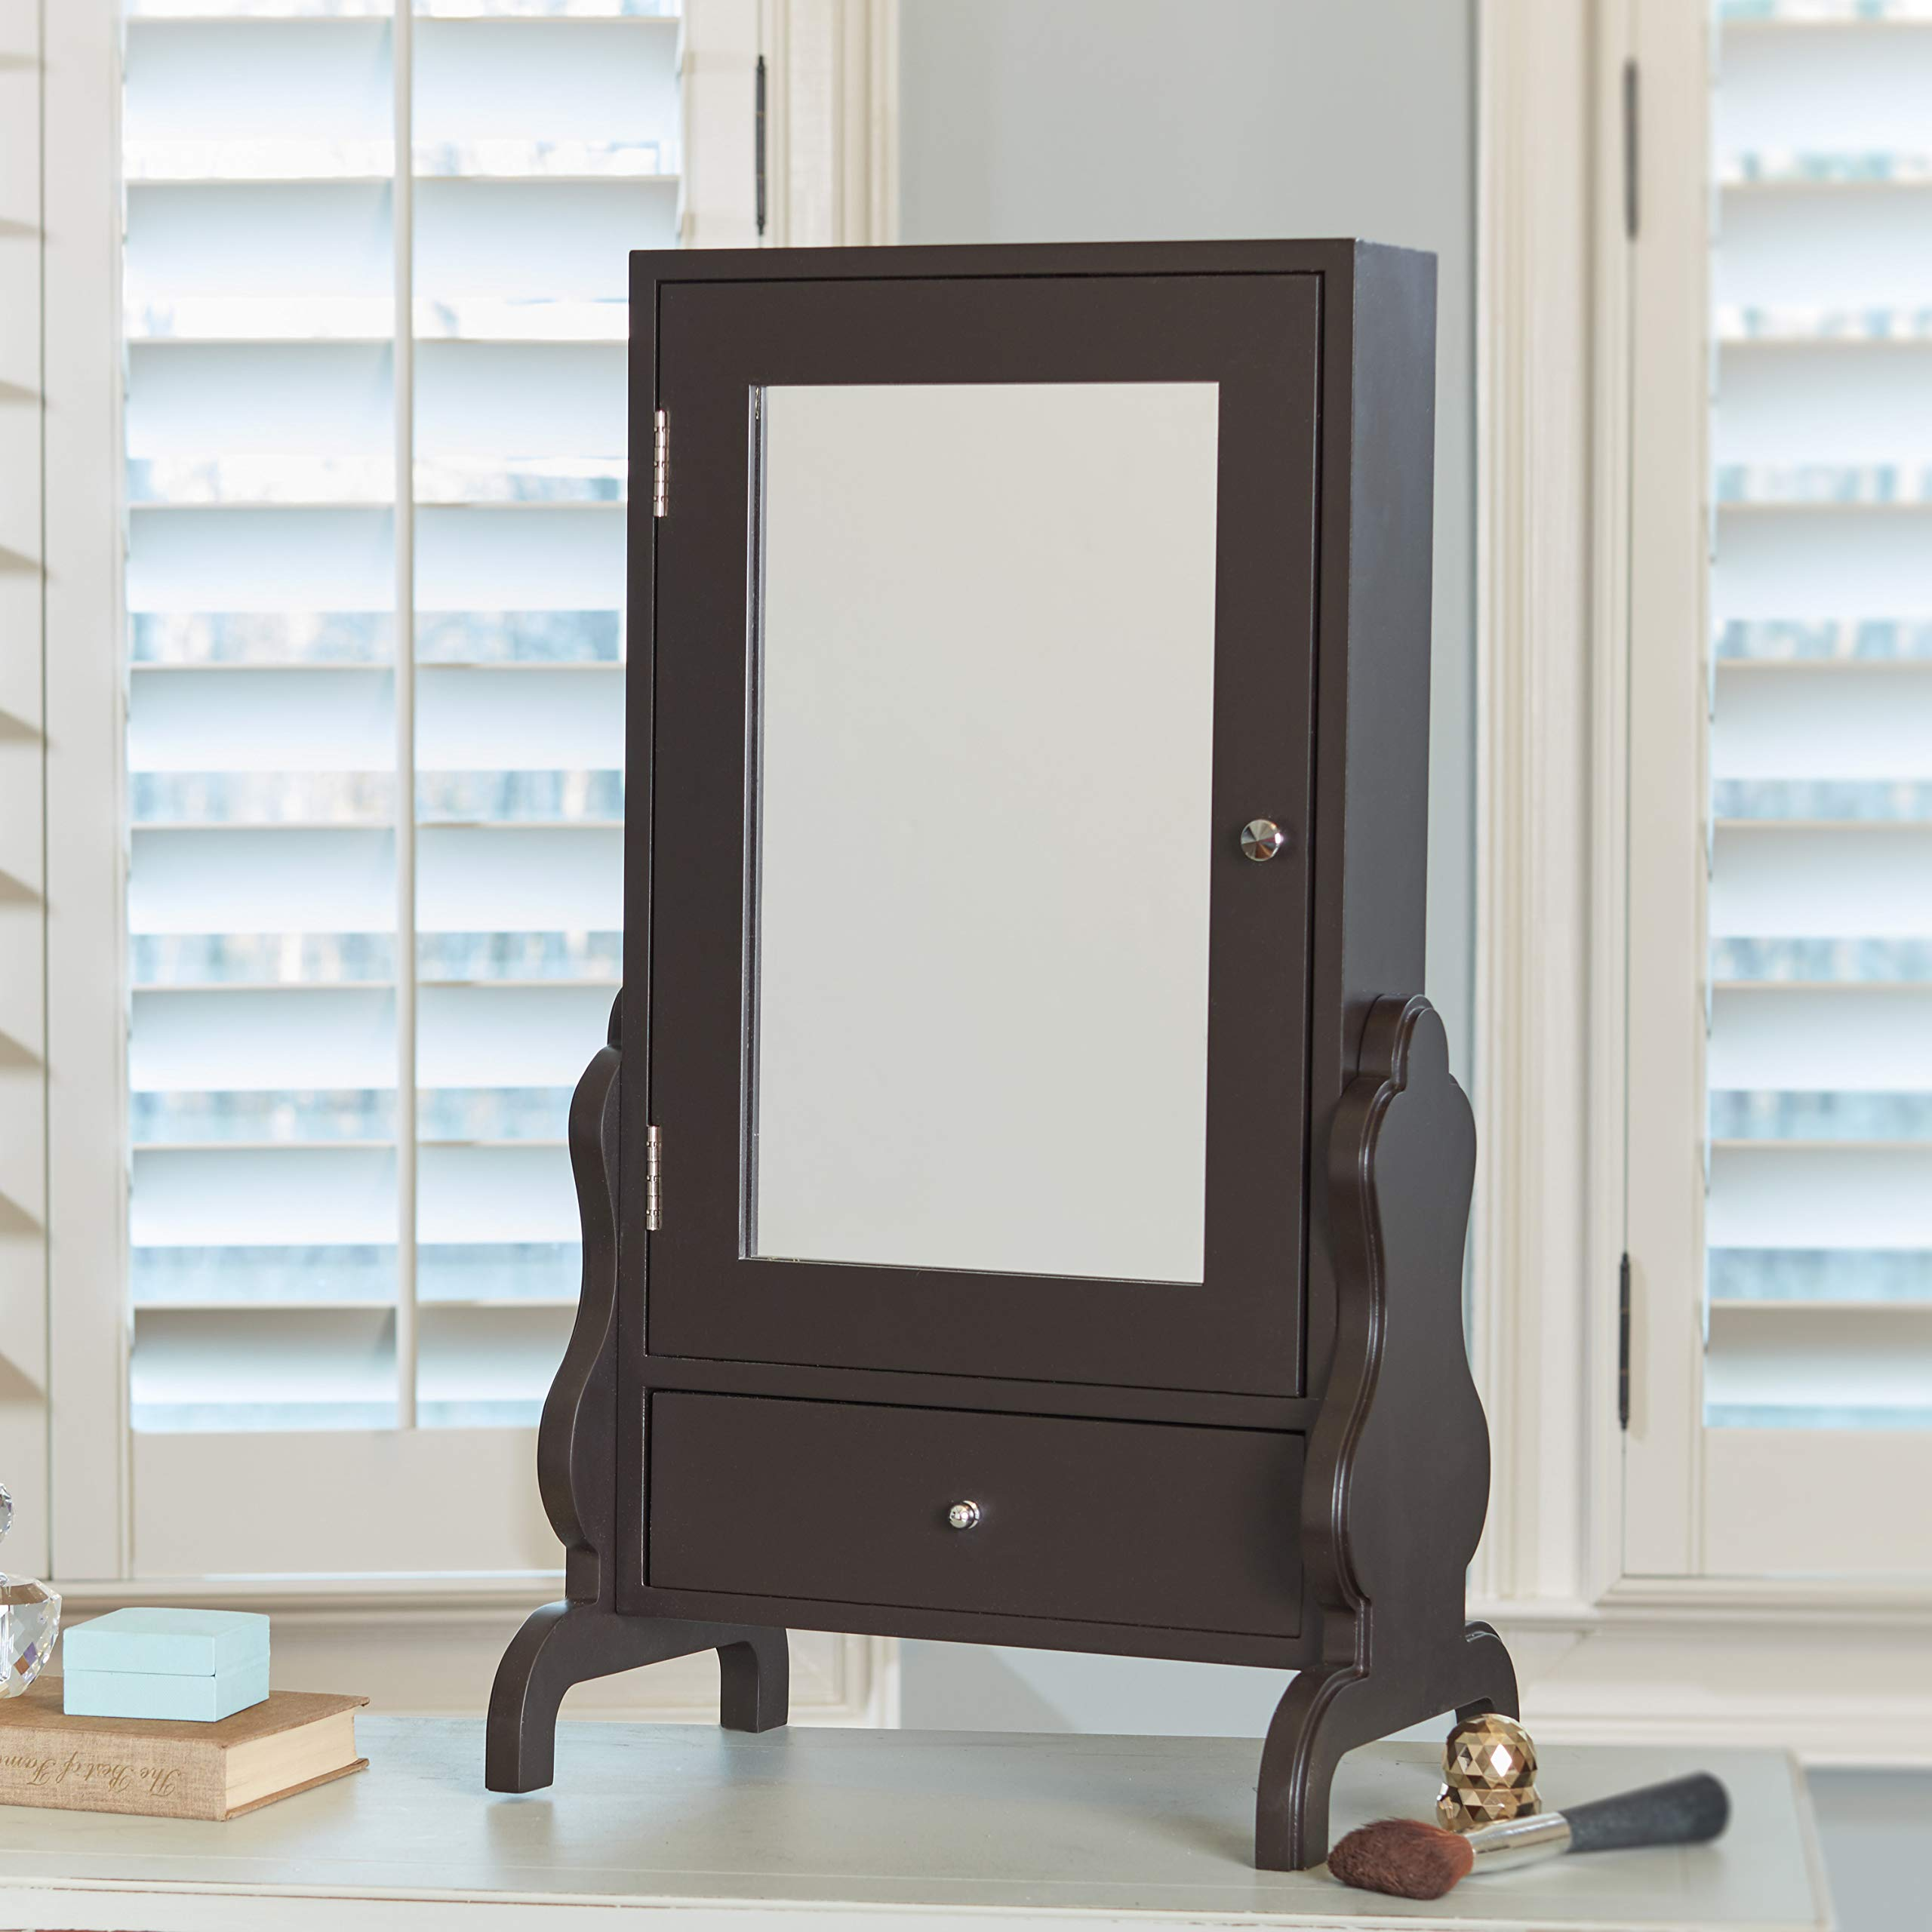 FirsTime & Co. Espresso Tabletop Mirror with Jewelry Storage by FirsTime & Co.